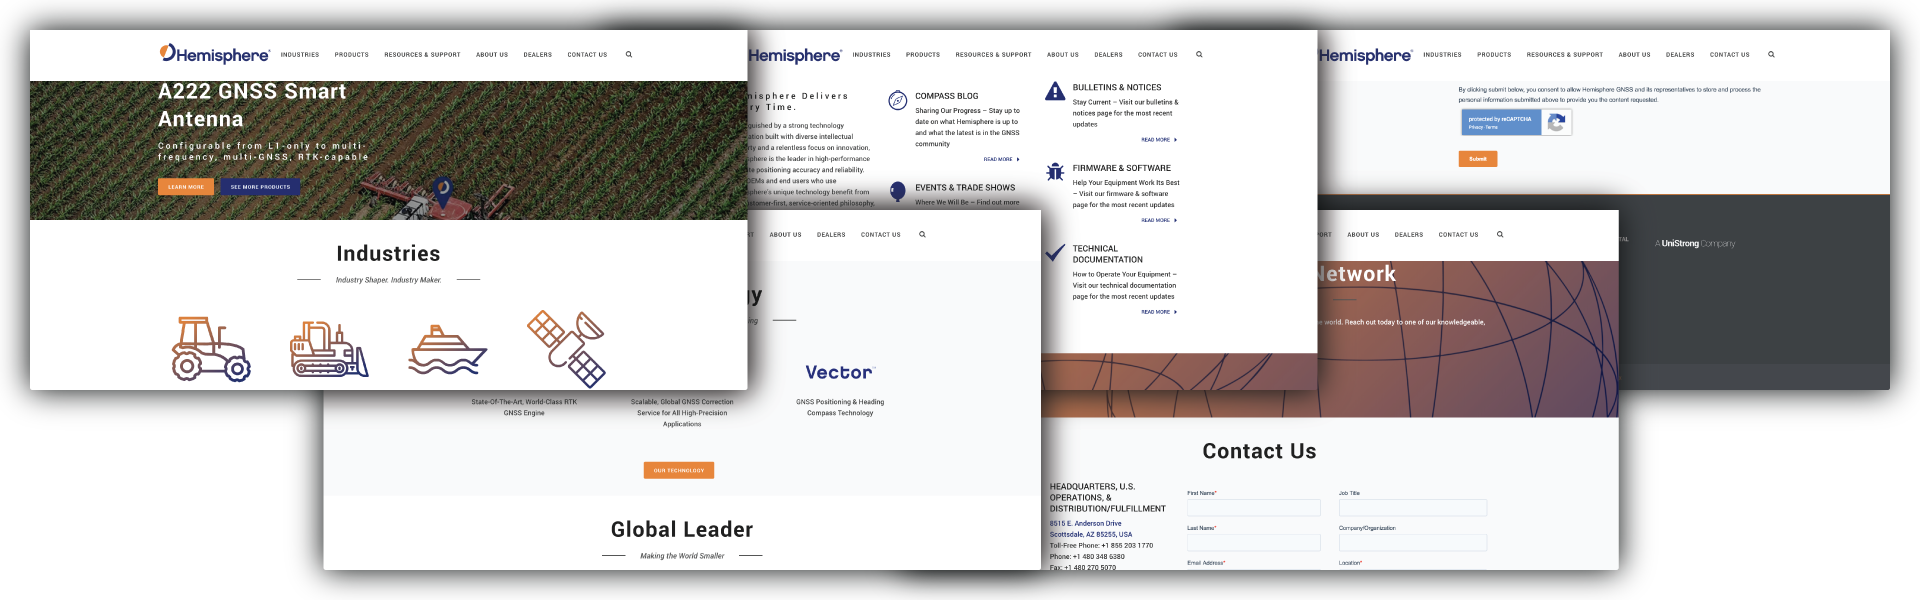 Announcing the Launch of Our All-New Corporate Website